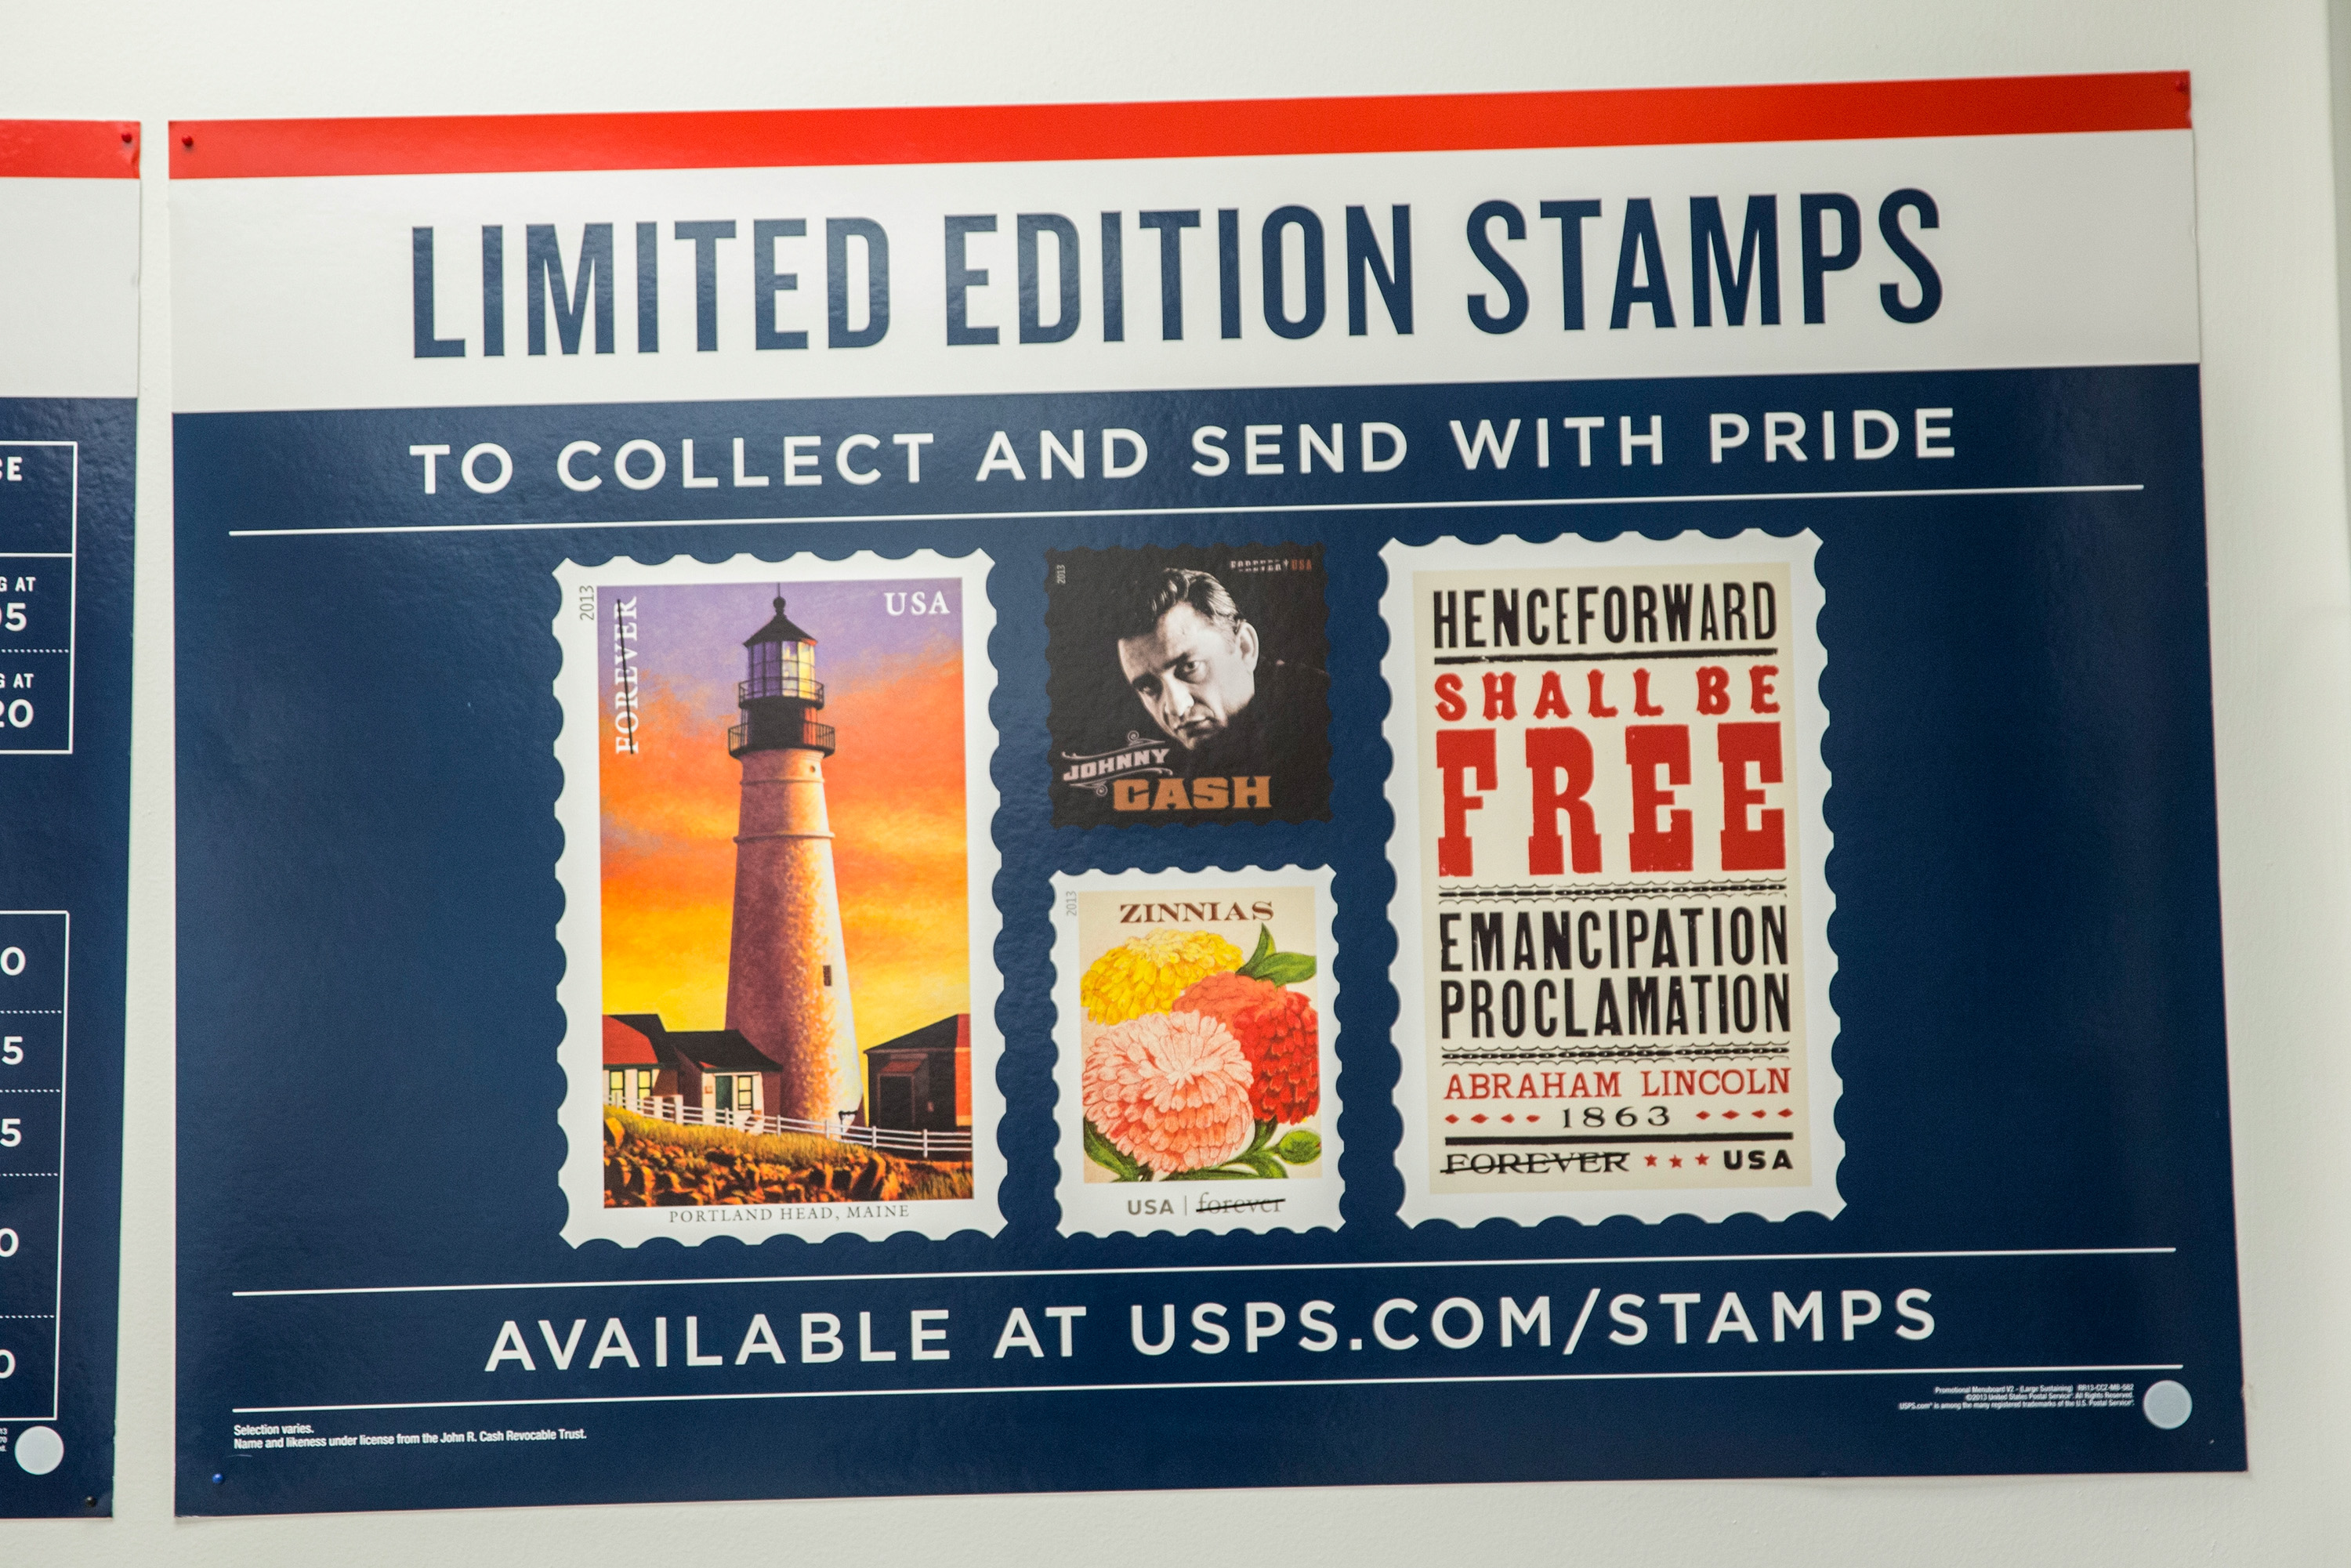 U S Post Office Made Stamps Cheaper For The First Time In